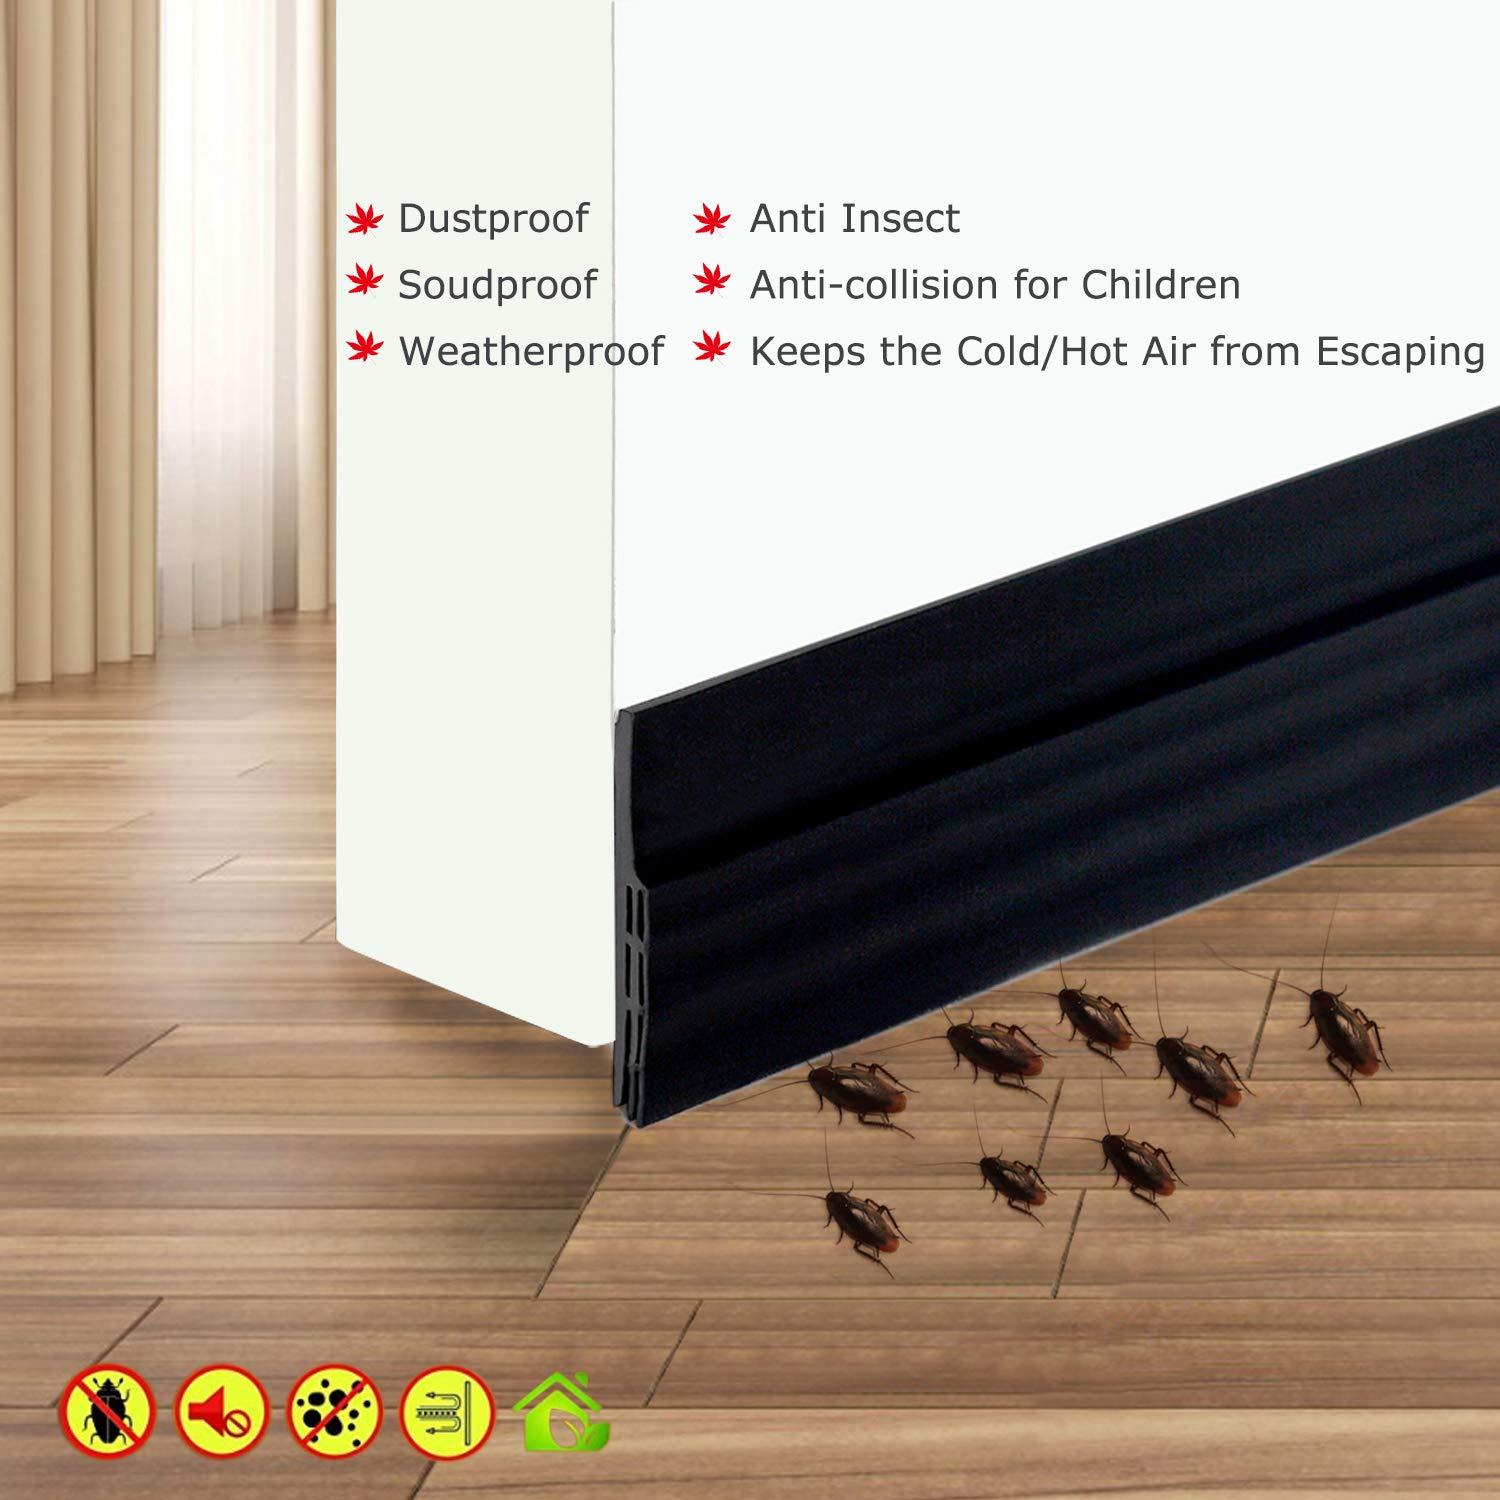 2 W X 39 L Soundproof Camel Home Weather Stripping Rubber Under Door Bottom for Interior Doors Seal Strip Insulation for Weatherproof Self Adhesive Door Sweep Draft Stopper 2 W X 39 L Black